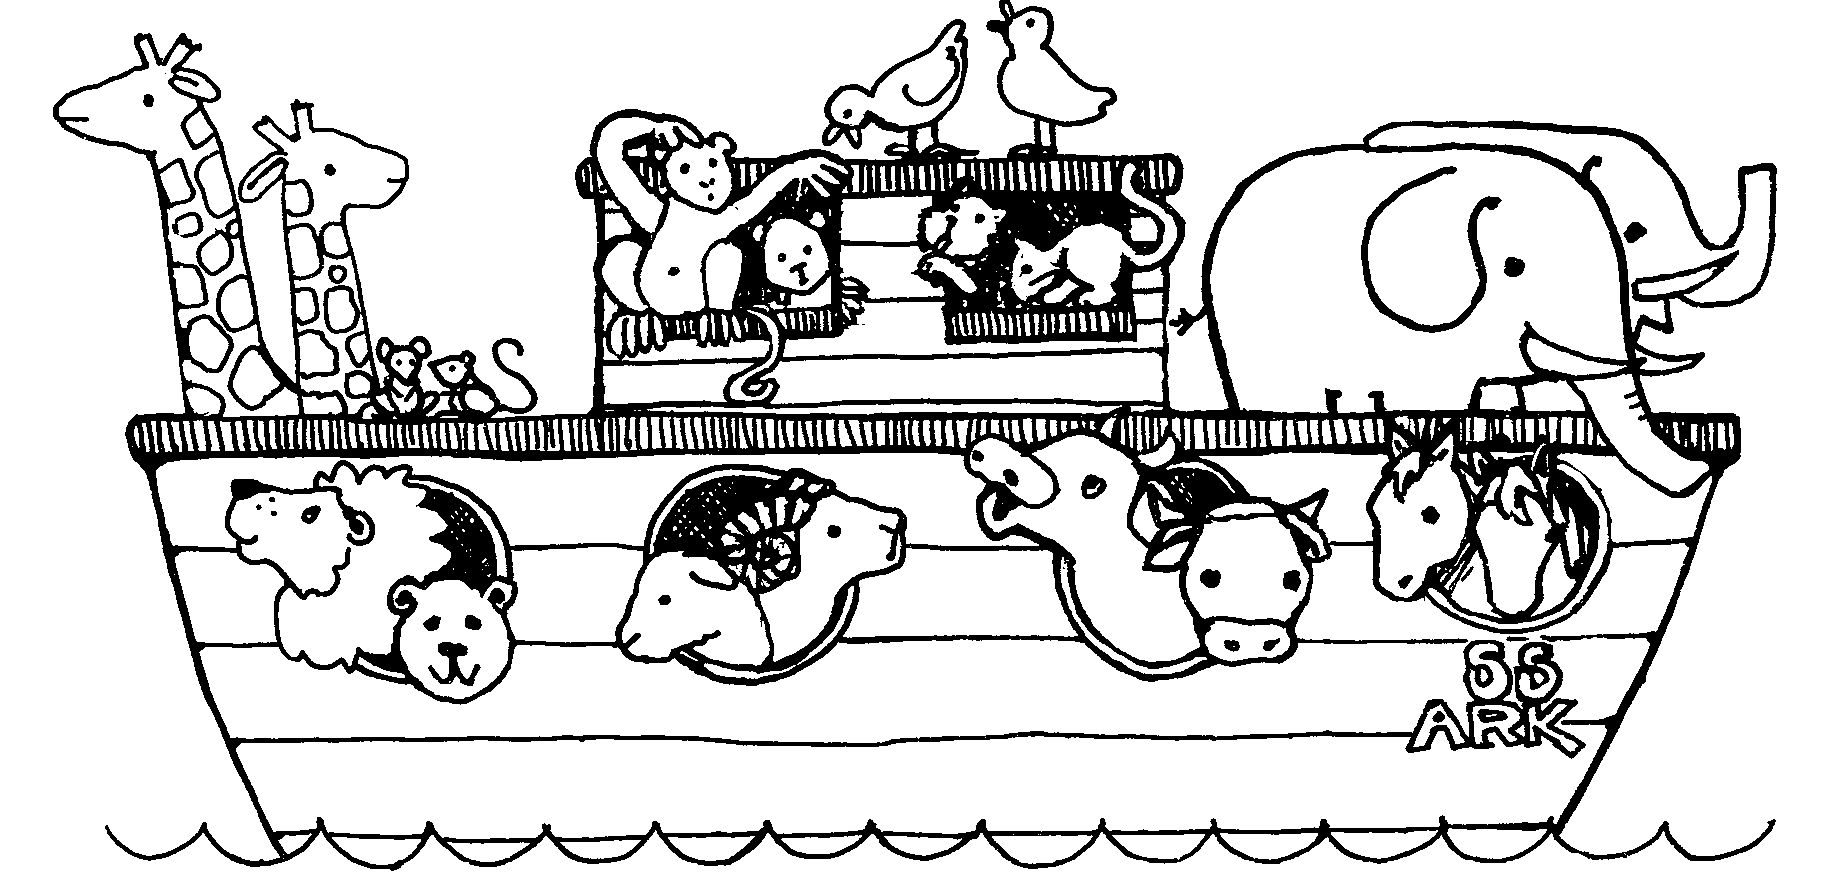 noah\'s ark coloring page 02 | Preschool coloring pages ...